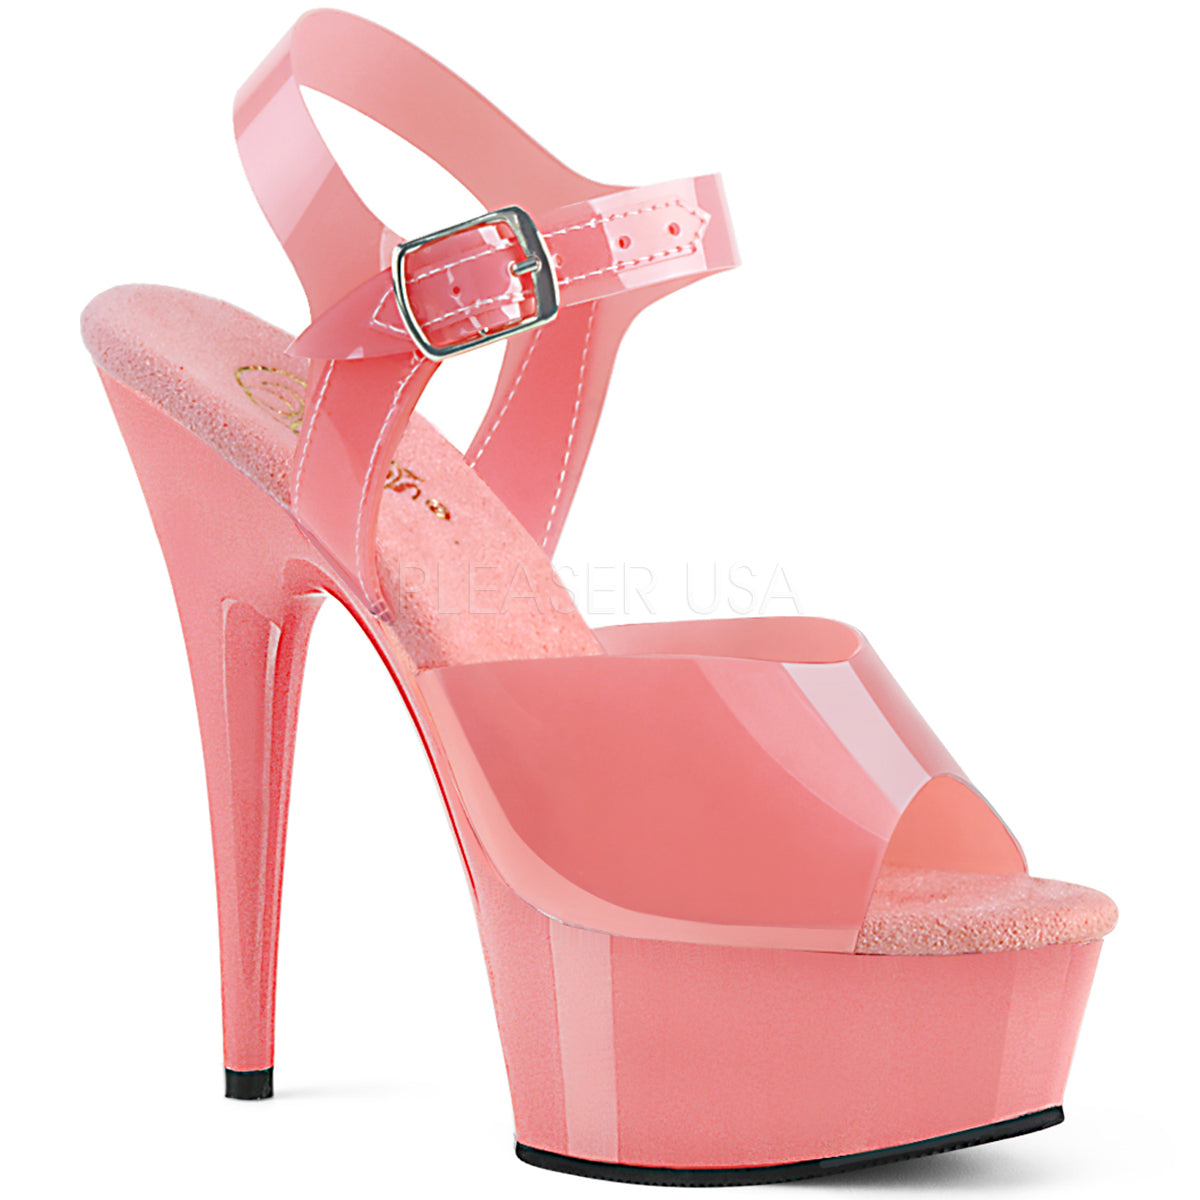 DELIGHT-608N  Baby Pink (Jelly-Like) TPU/Baby Pink